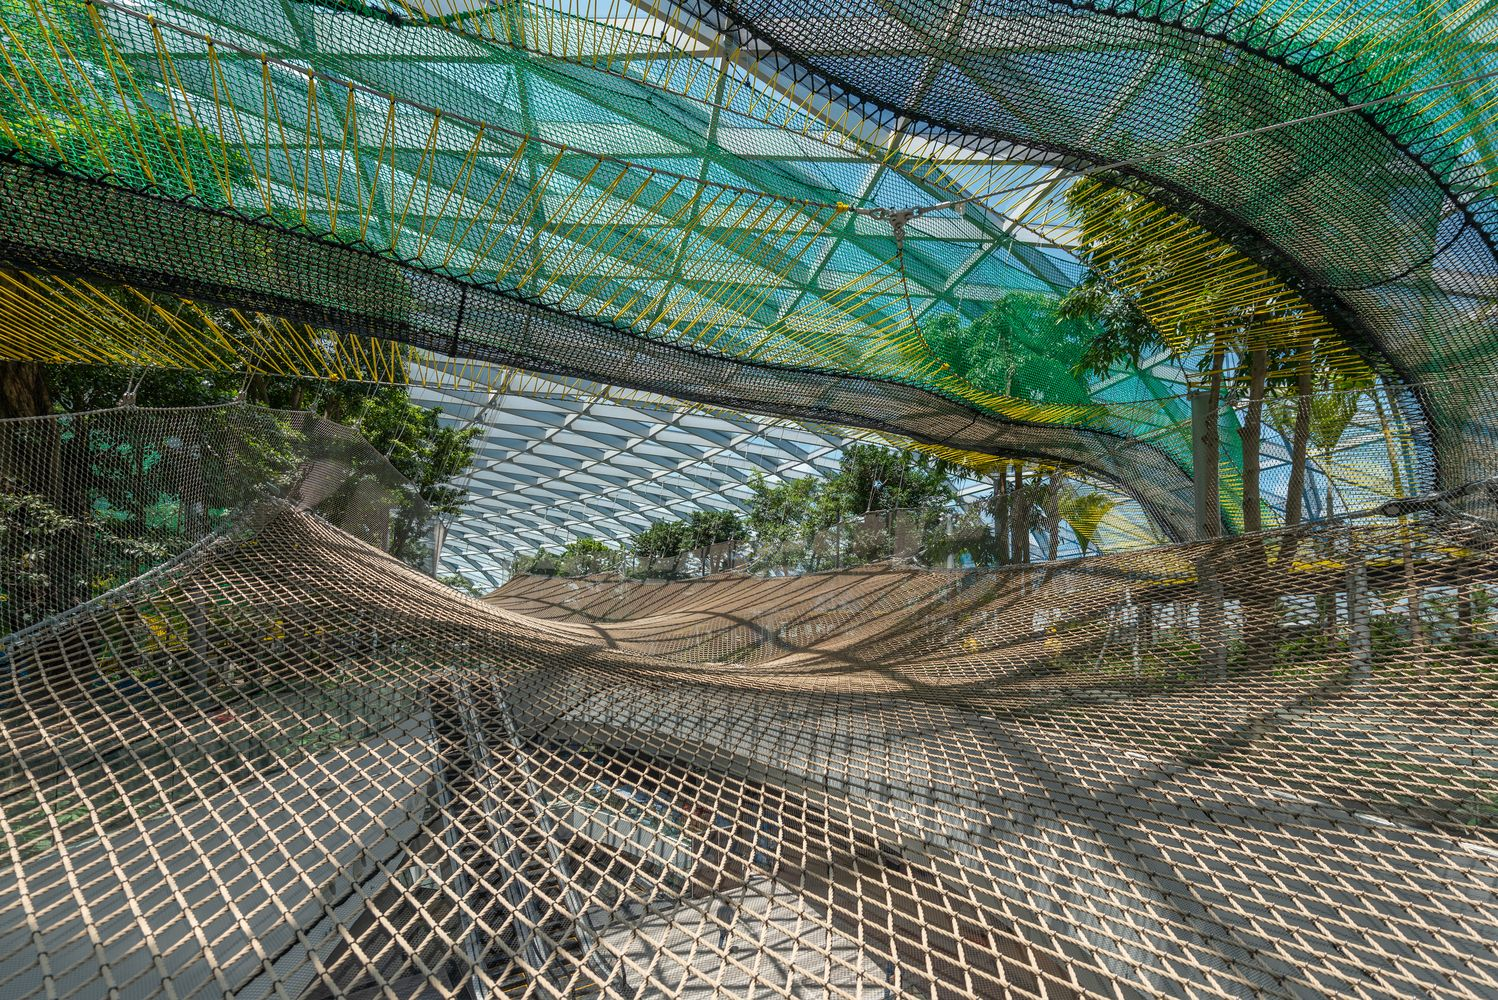 Gallery Of Jewel Changi Airport Safdie Architects 5 In 2020